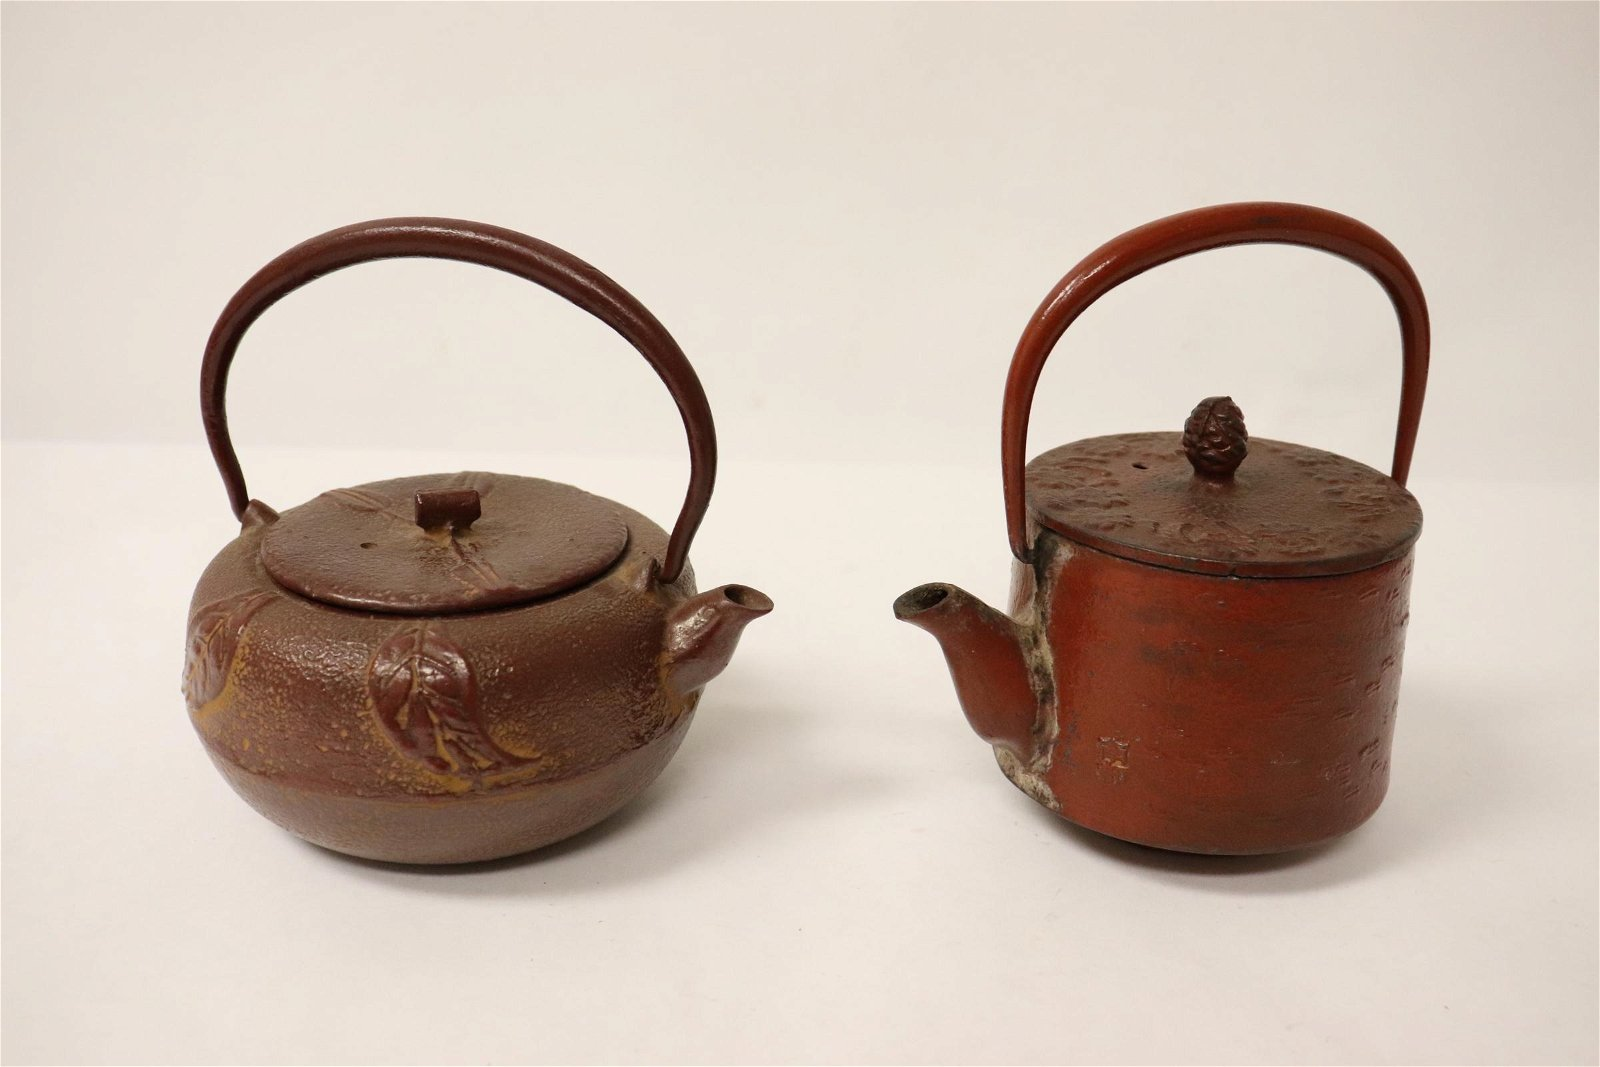 2 Chinese cast iron teapots